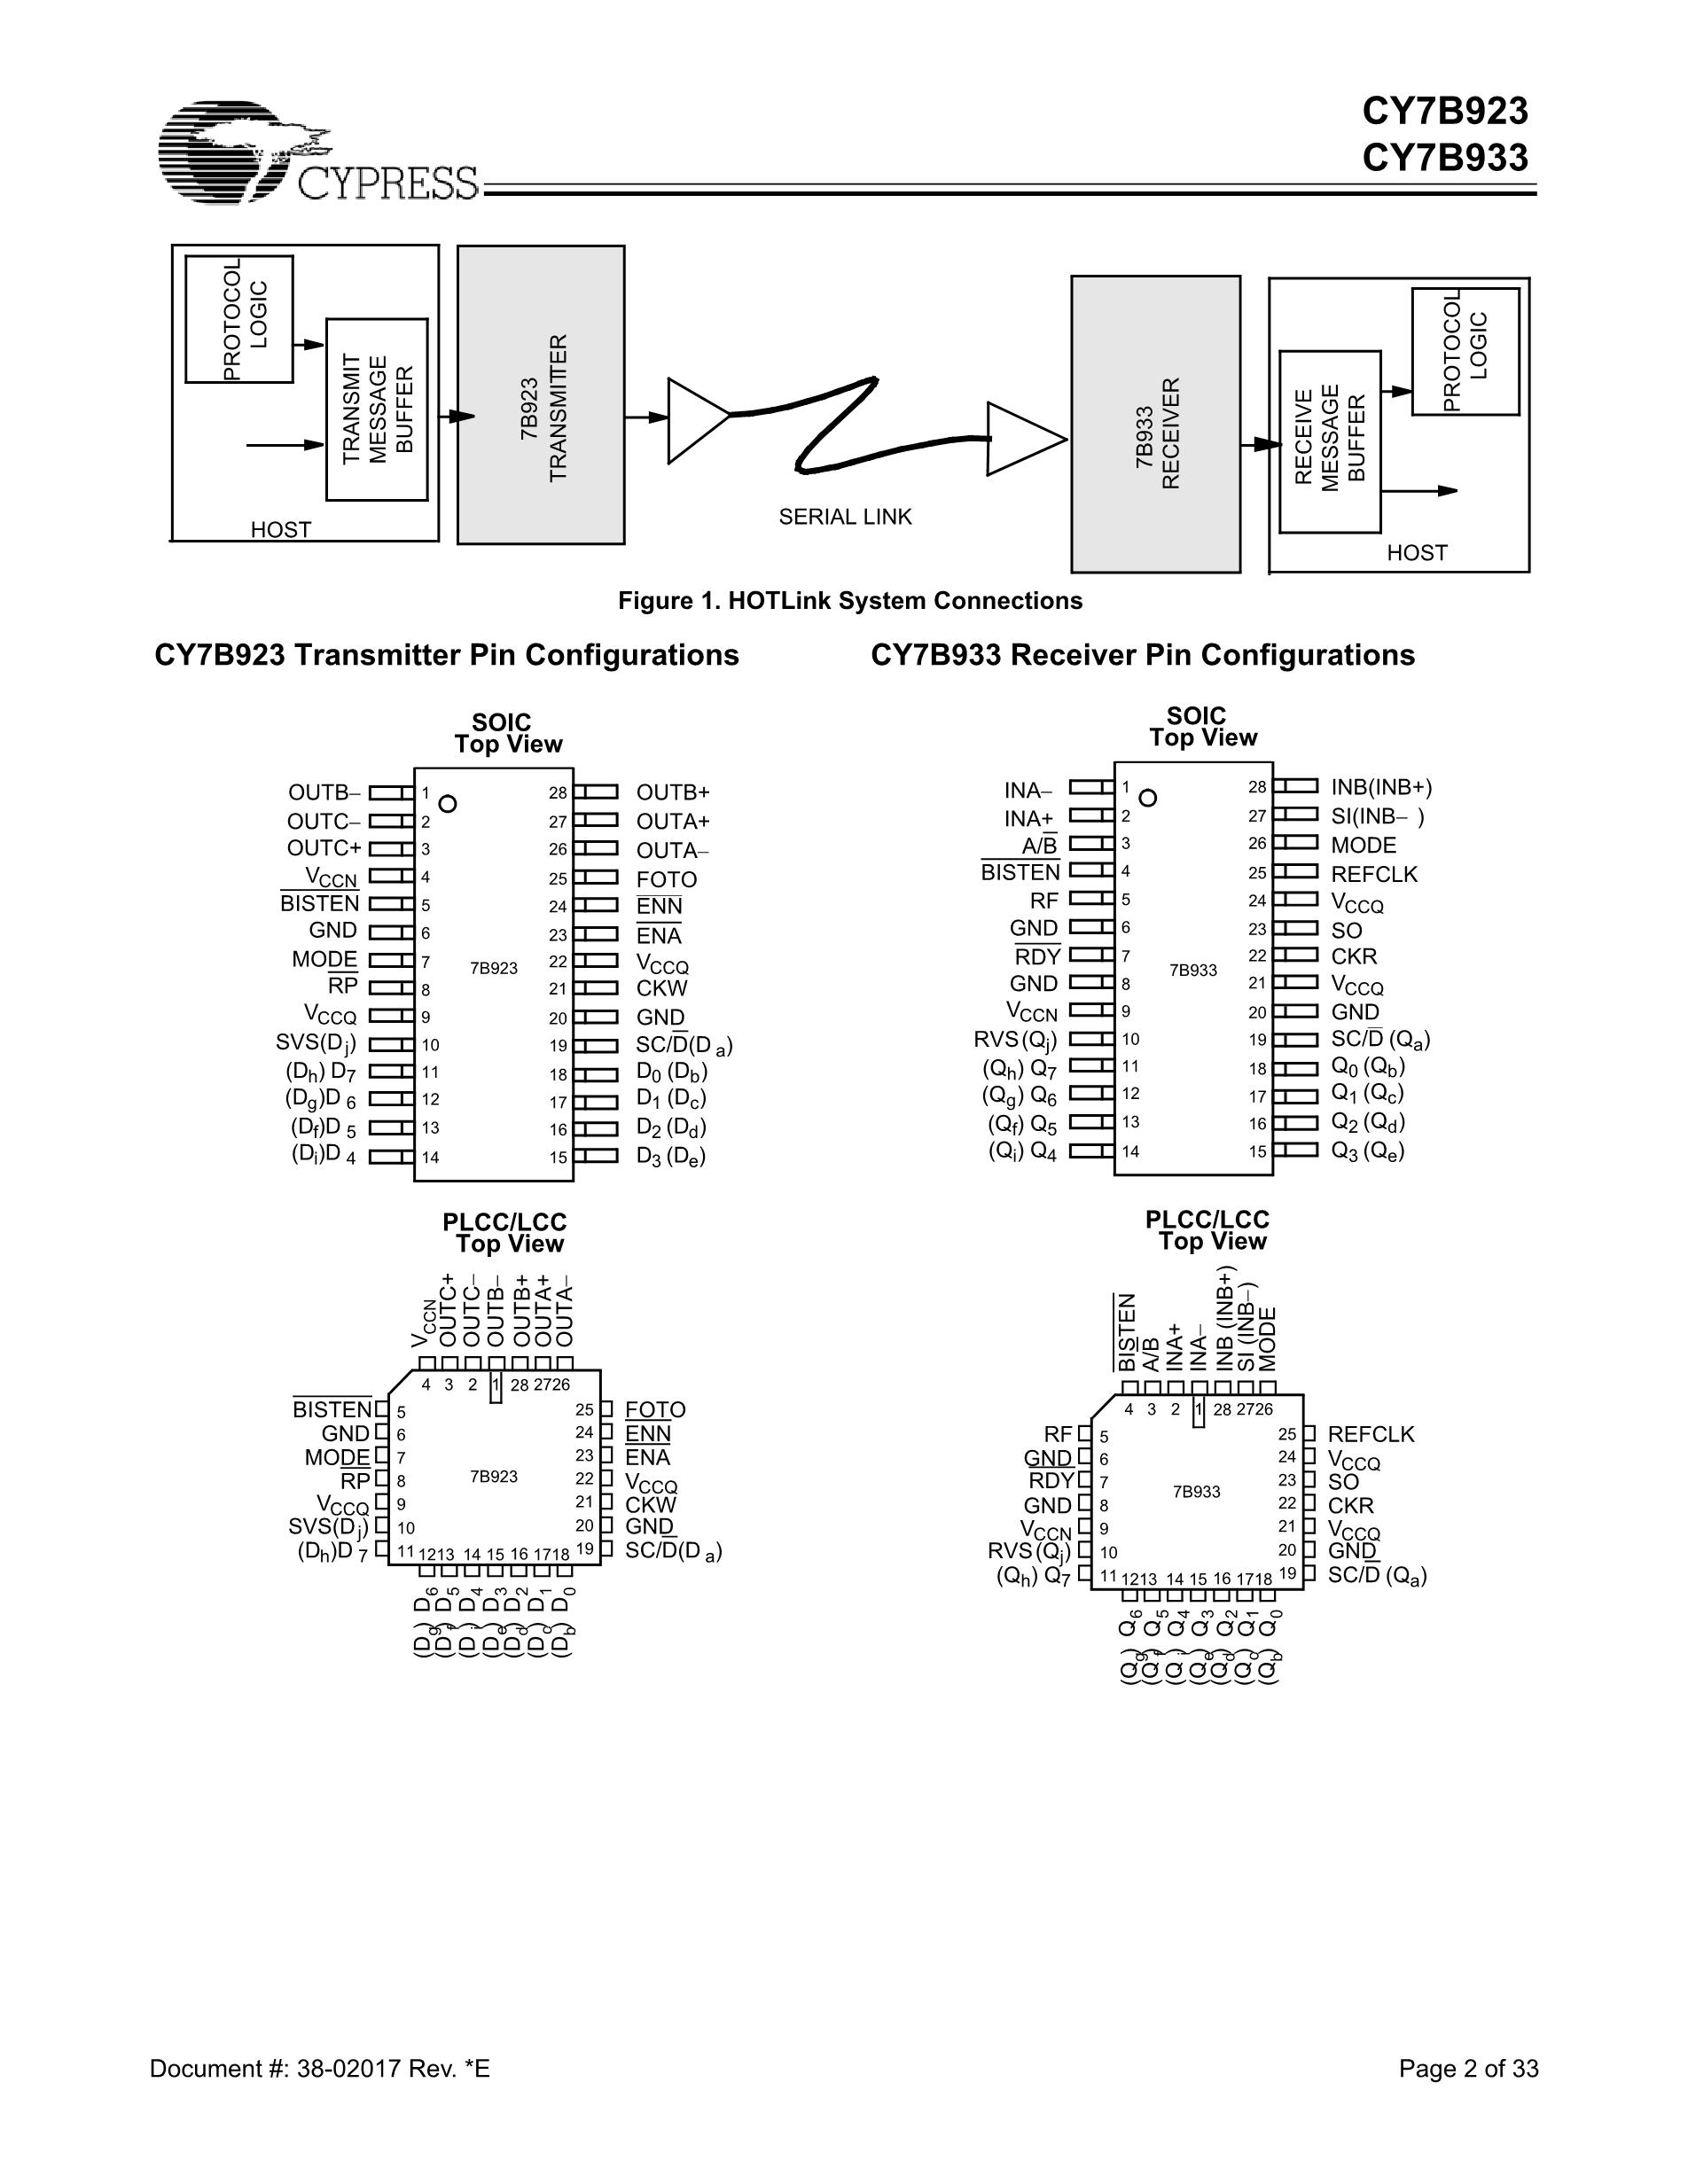 CY7B991-2JXCT's pdf picture 2